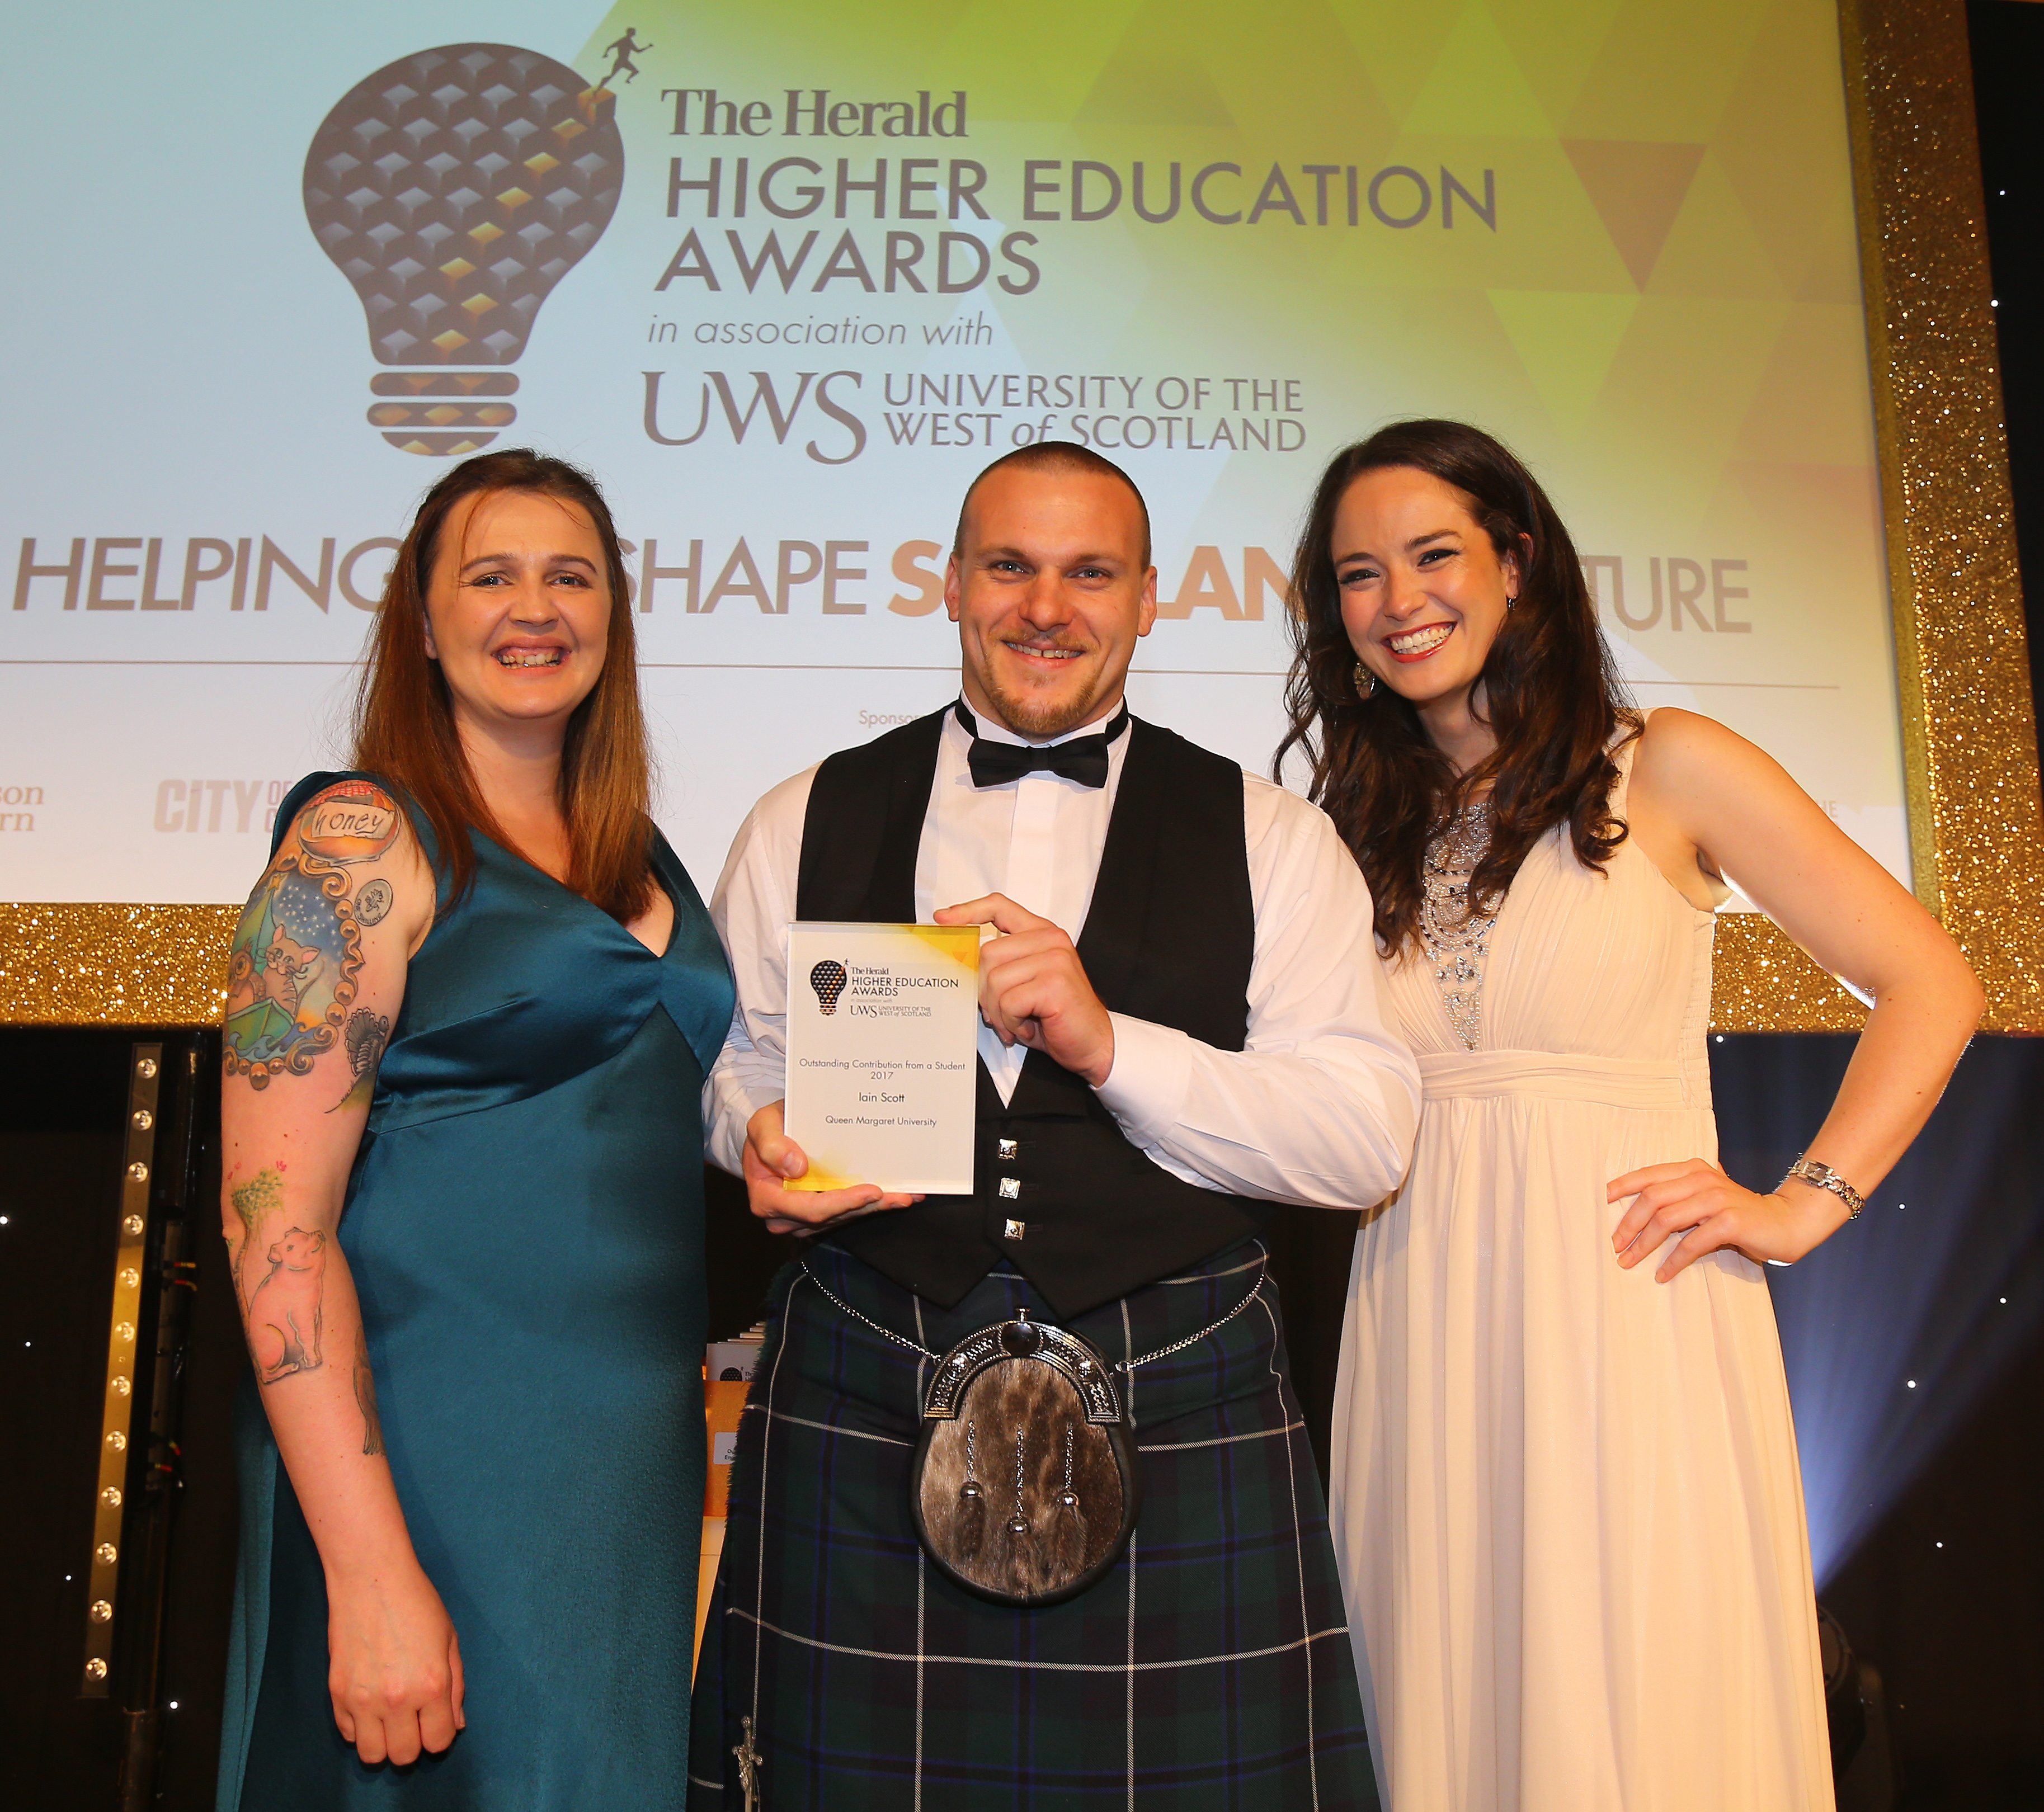 The Herald Higher Education Awards 2017. Radisson Blu hotel, Glasgow. Winner of Outstanding contribution from a student is Iain Scott of Queen Margaret University. Presenting the award is Vonnie Sandlan, NUS Scotland president, left and event host Jennifer Reoch at right. Photograph by Colin Mearns 6 July 2017